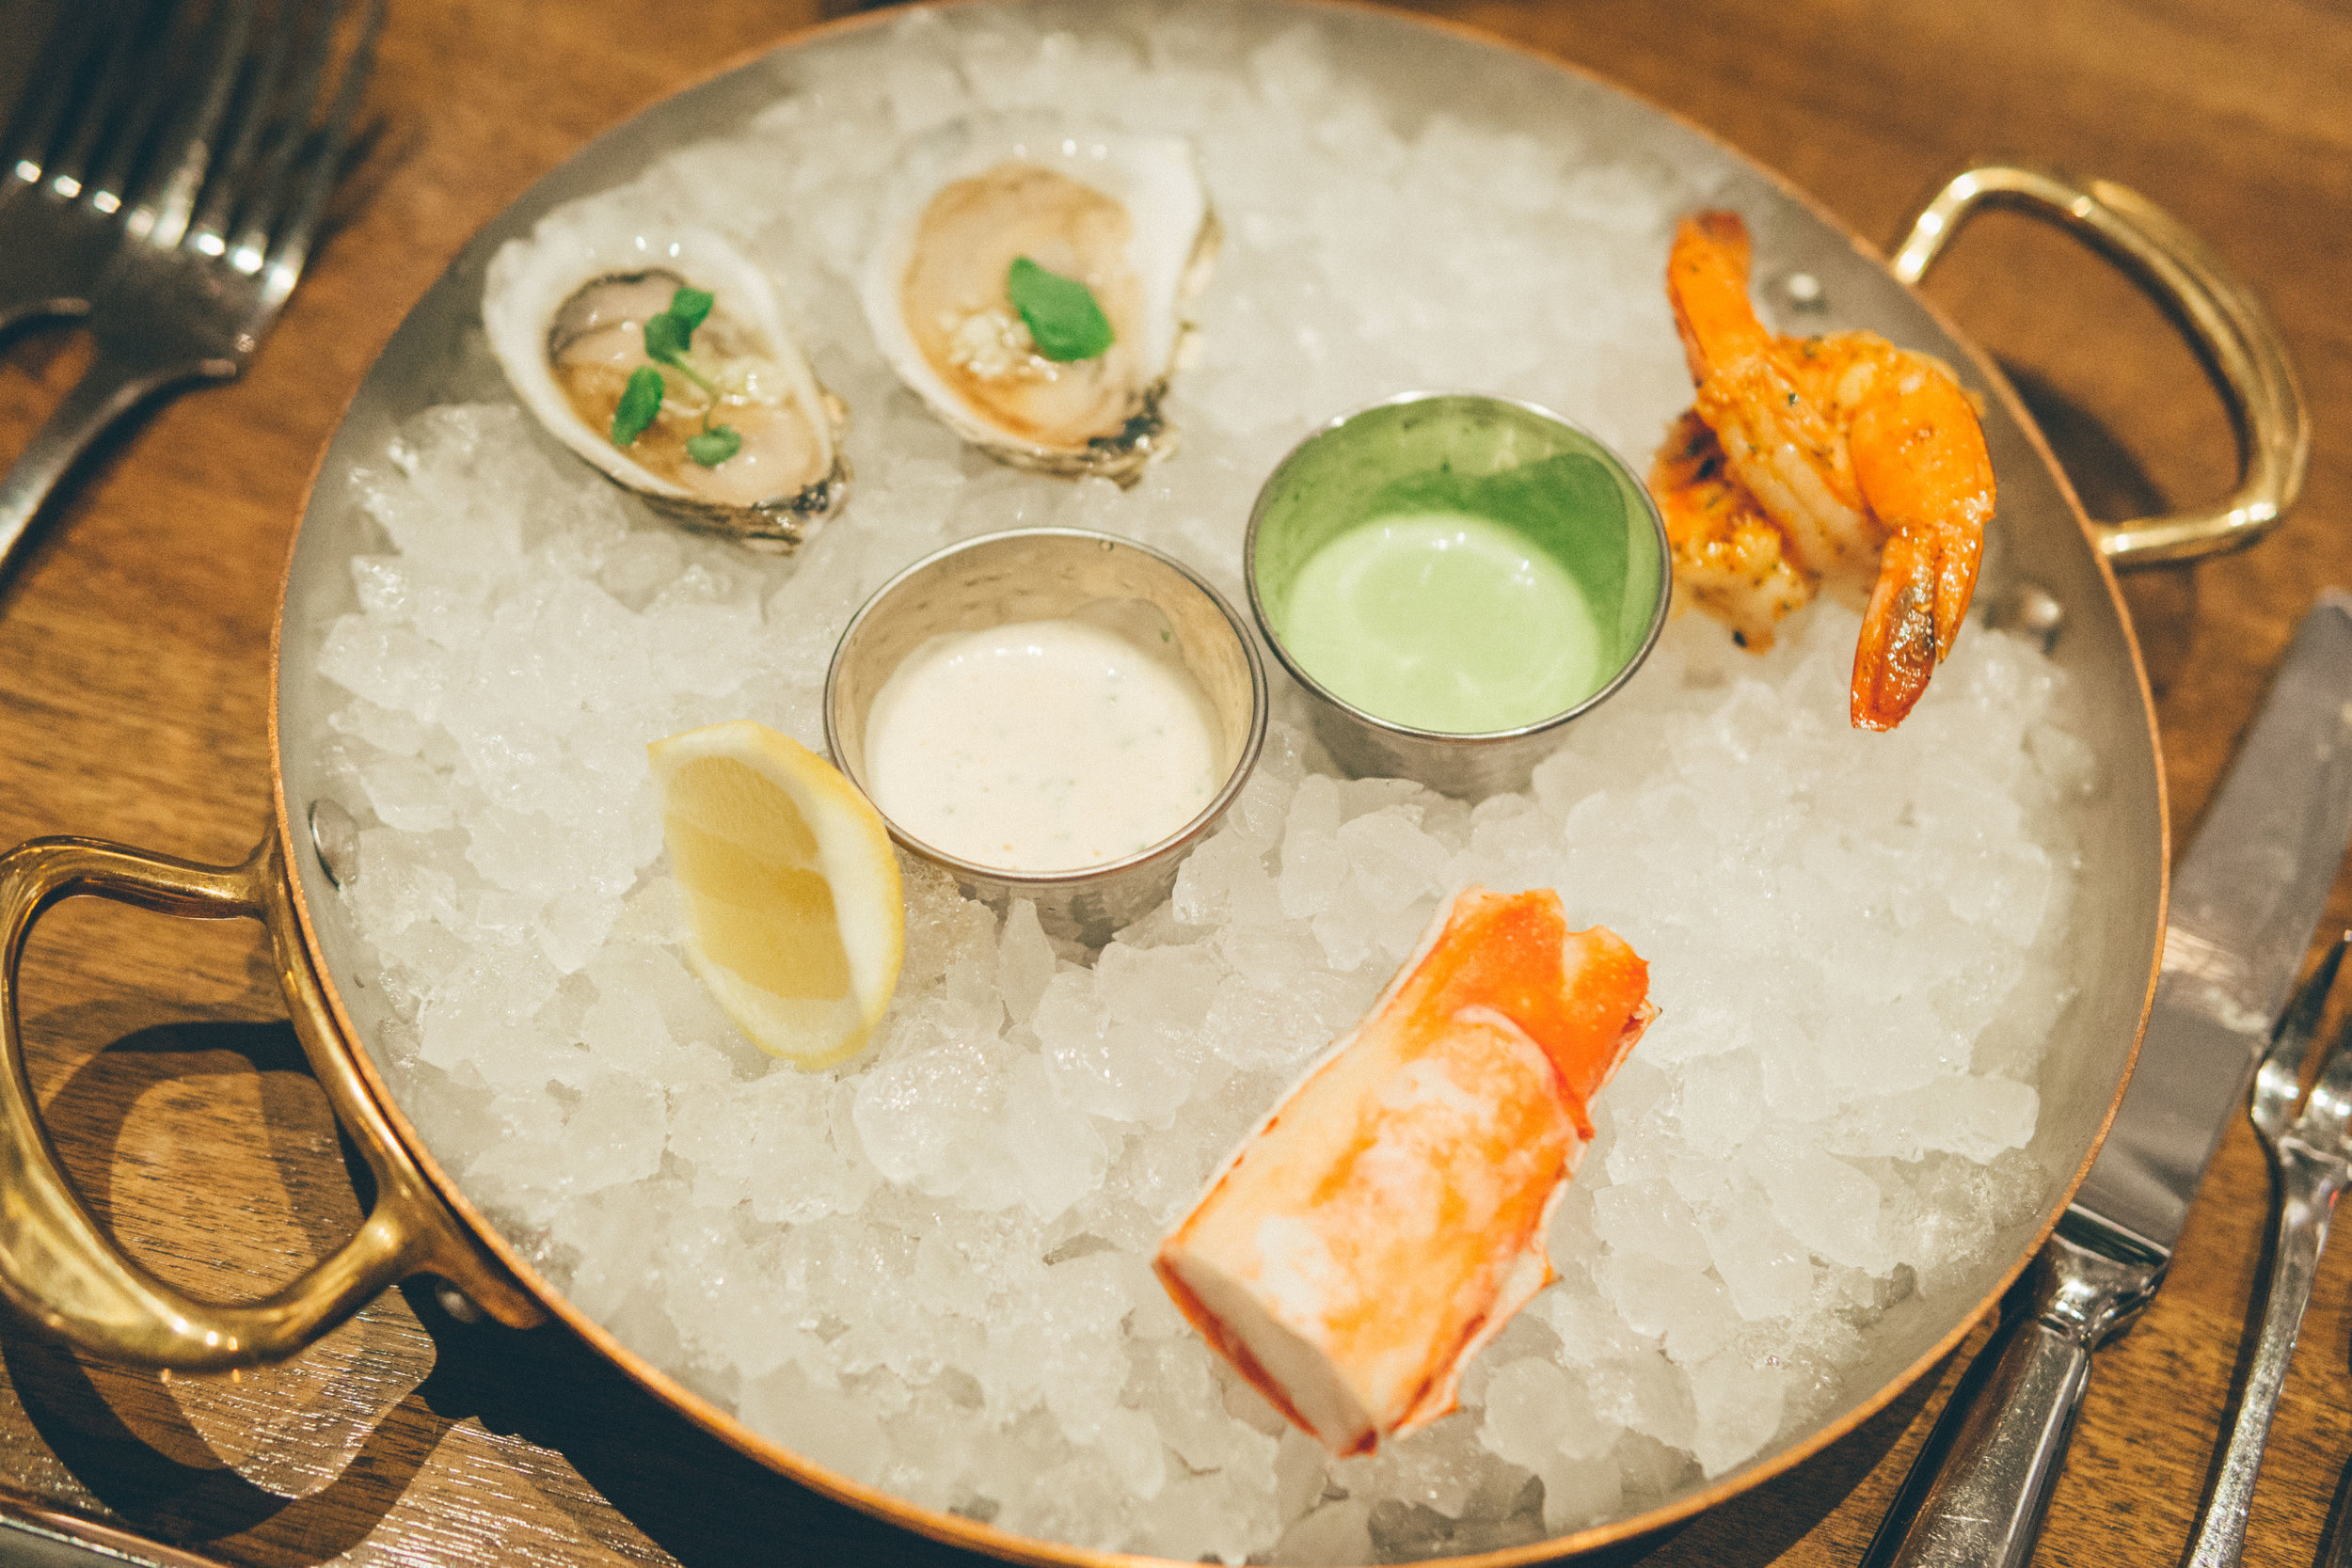 Trio of Seafood - composed oyster, peeled and eat shrimp, king crab